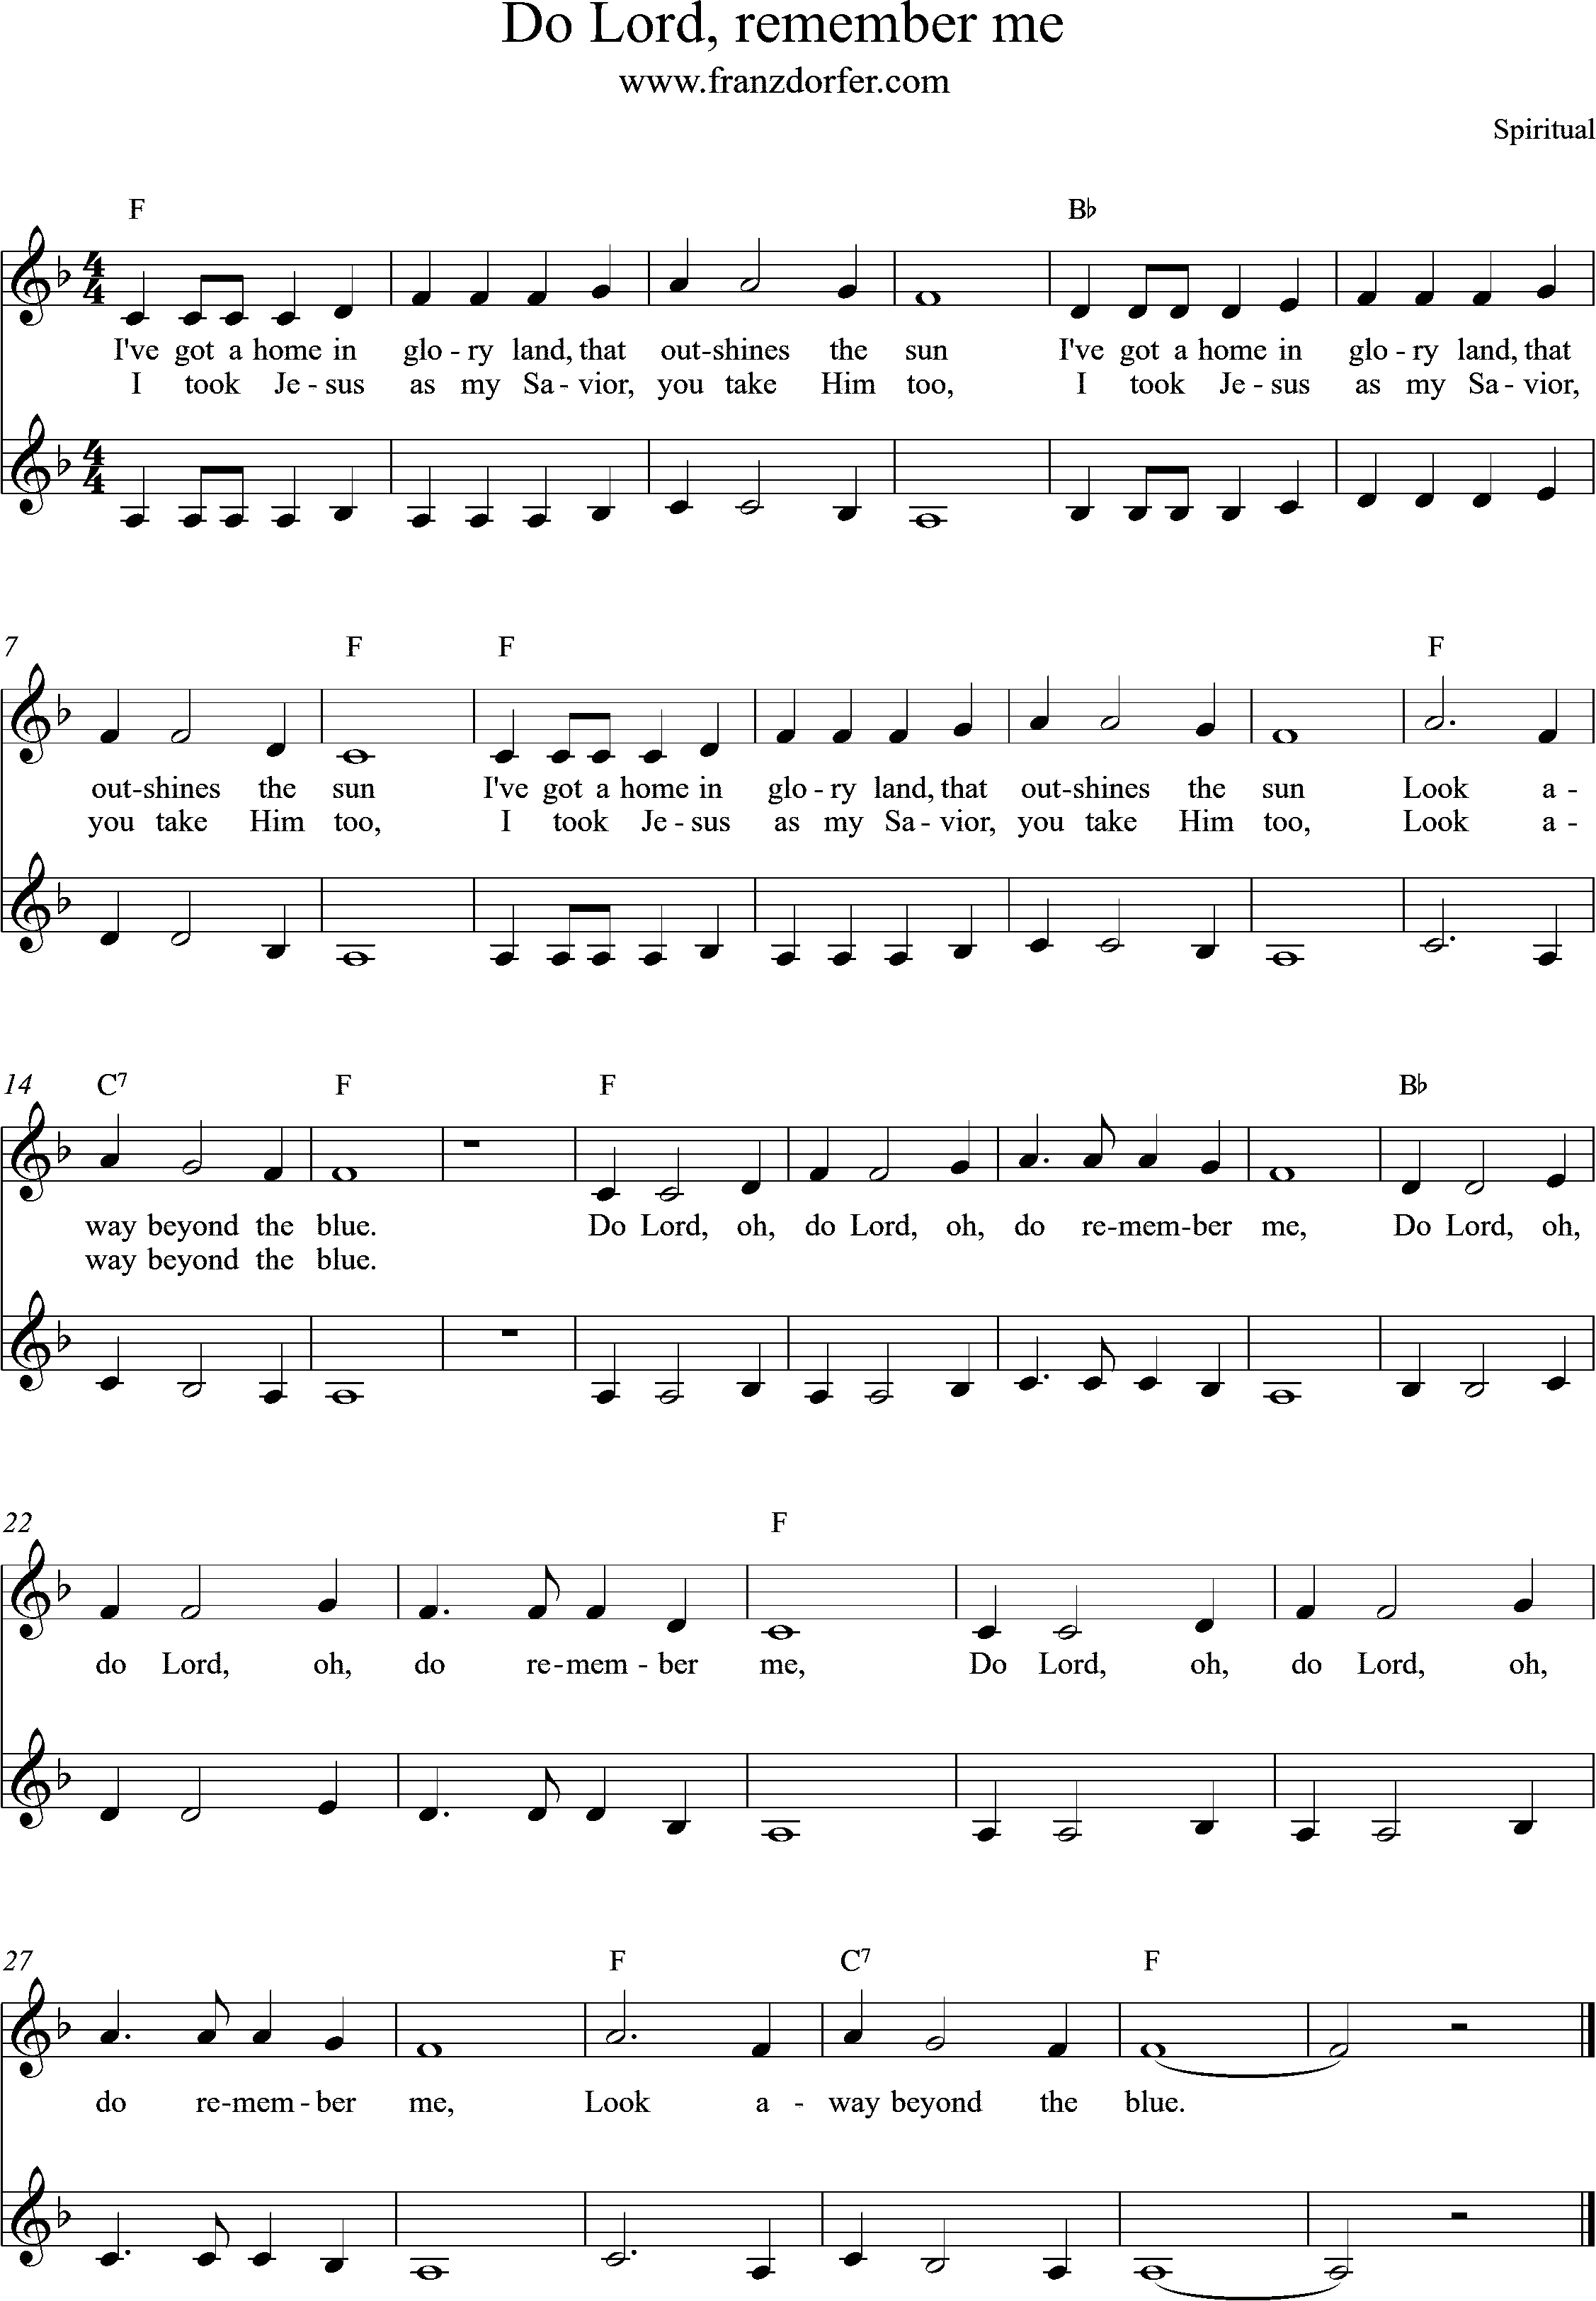 Sheetmusic, Do Lord remember me, F-Mjaor, Clarinent low